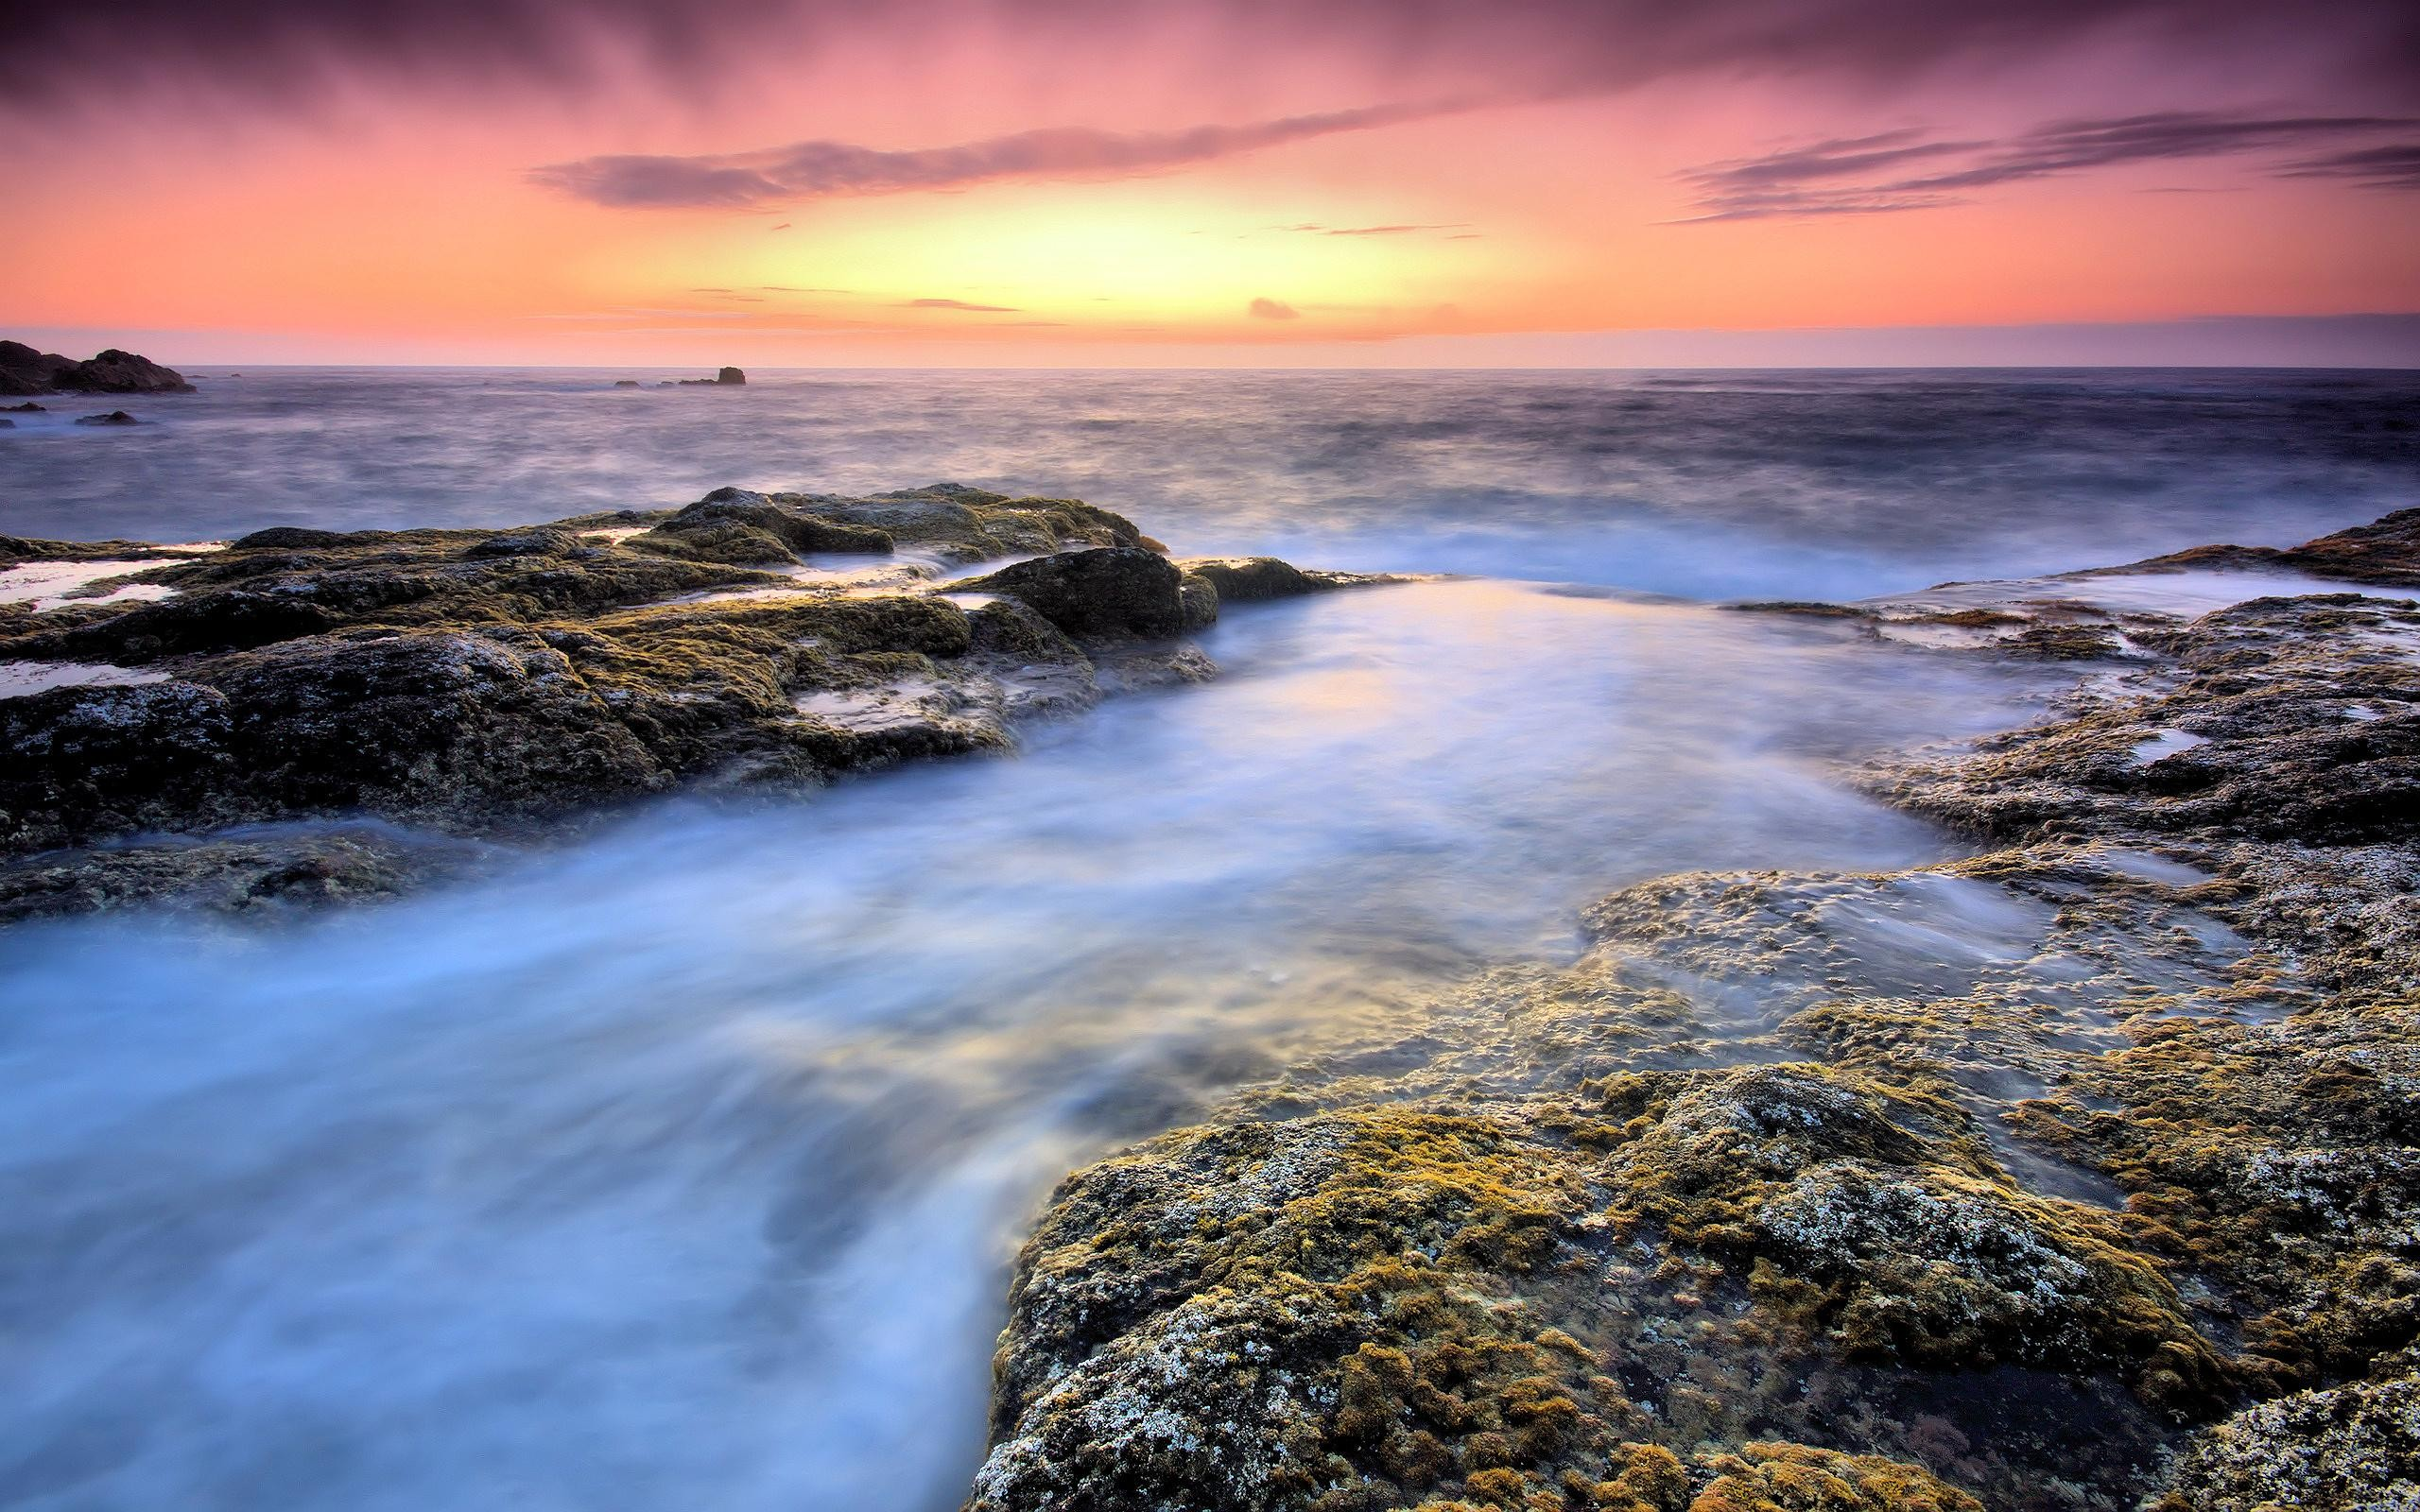 Seaside Tranquility Wallpapers Seaside Tranquility Stock